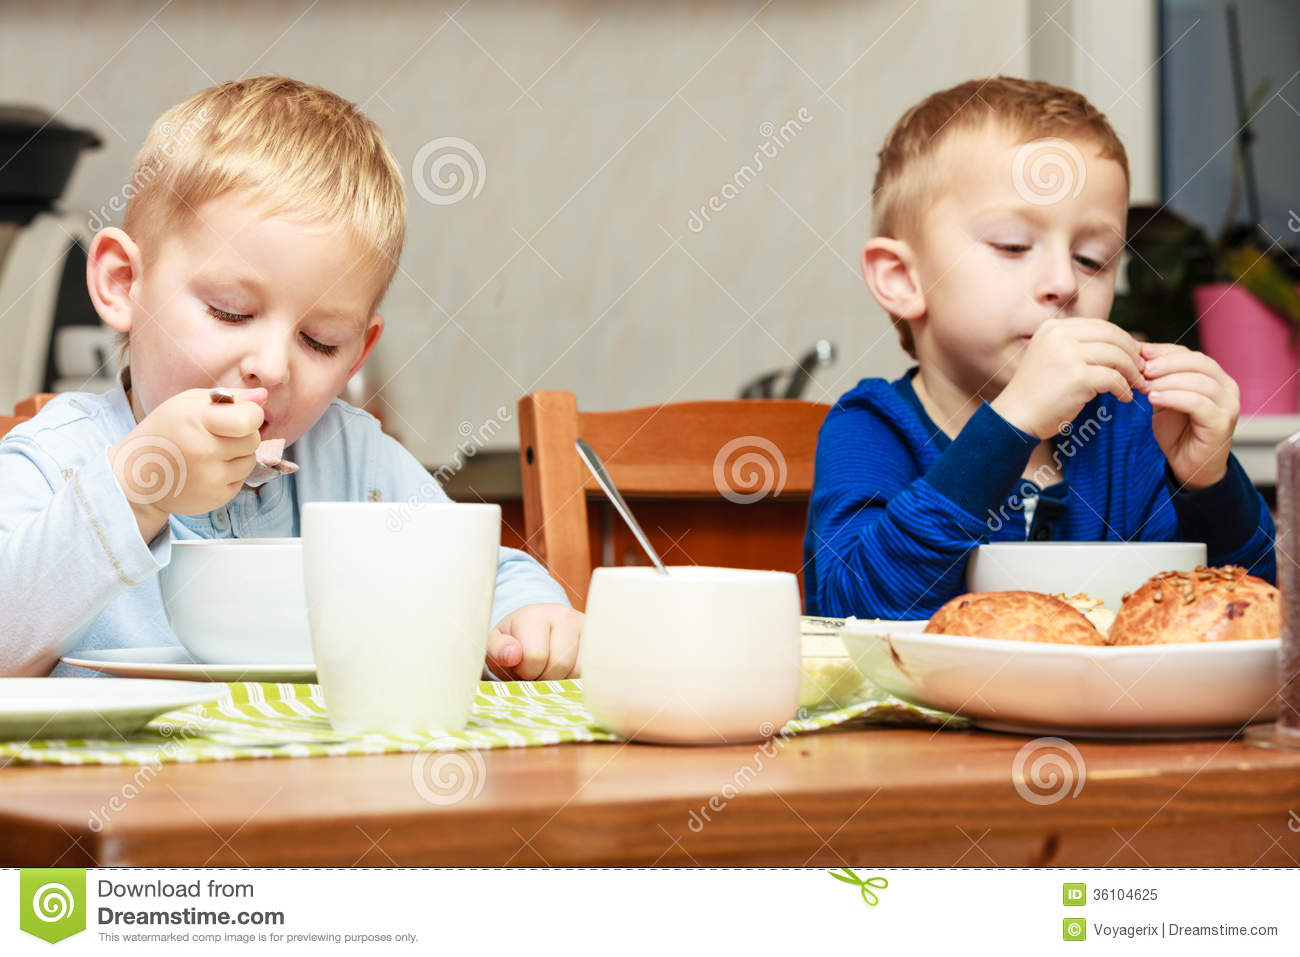 Boys Kids Children Eating Corn Flakes Breakfast Meal At